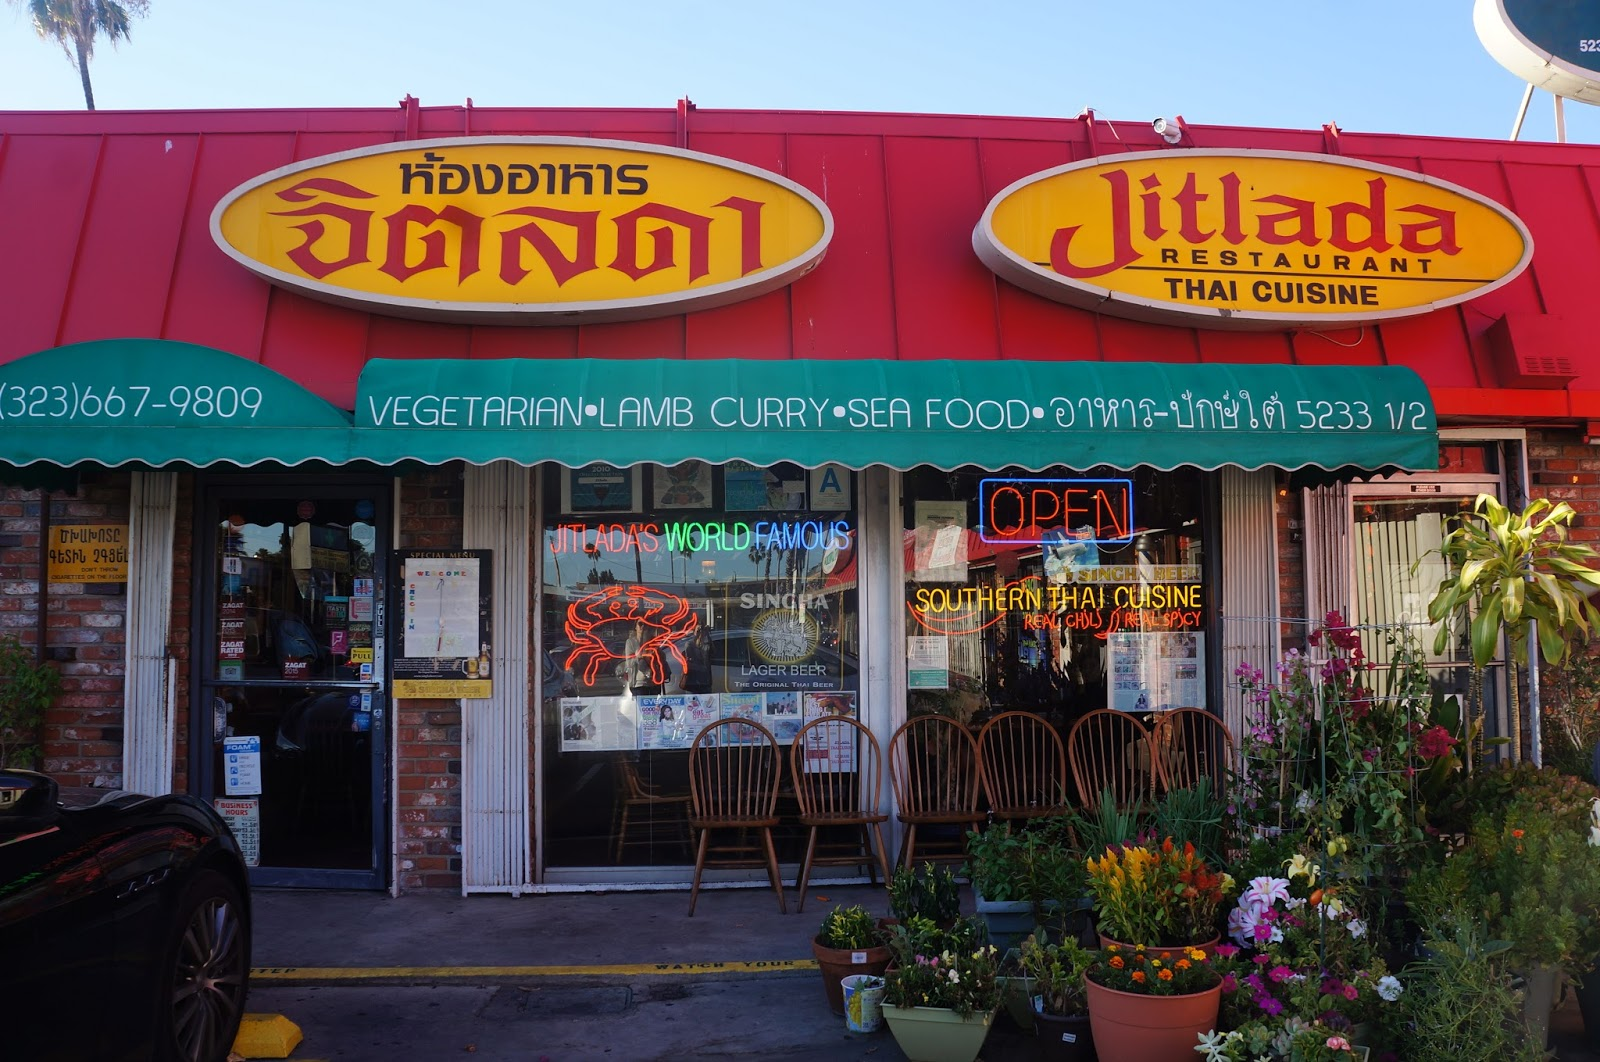 Since The 1970s Jitlada Has Been Serving Thai Food To Ravenous Angelenos Restaurant Changed Multiple Owners 70s And Is Curly Run By